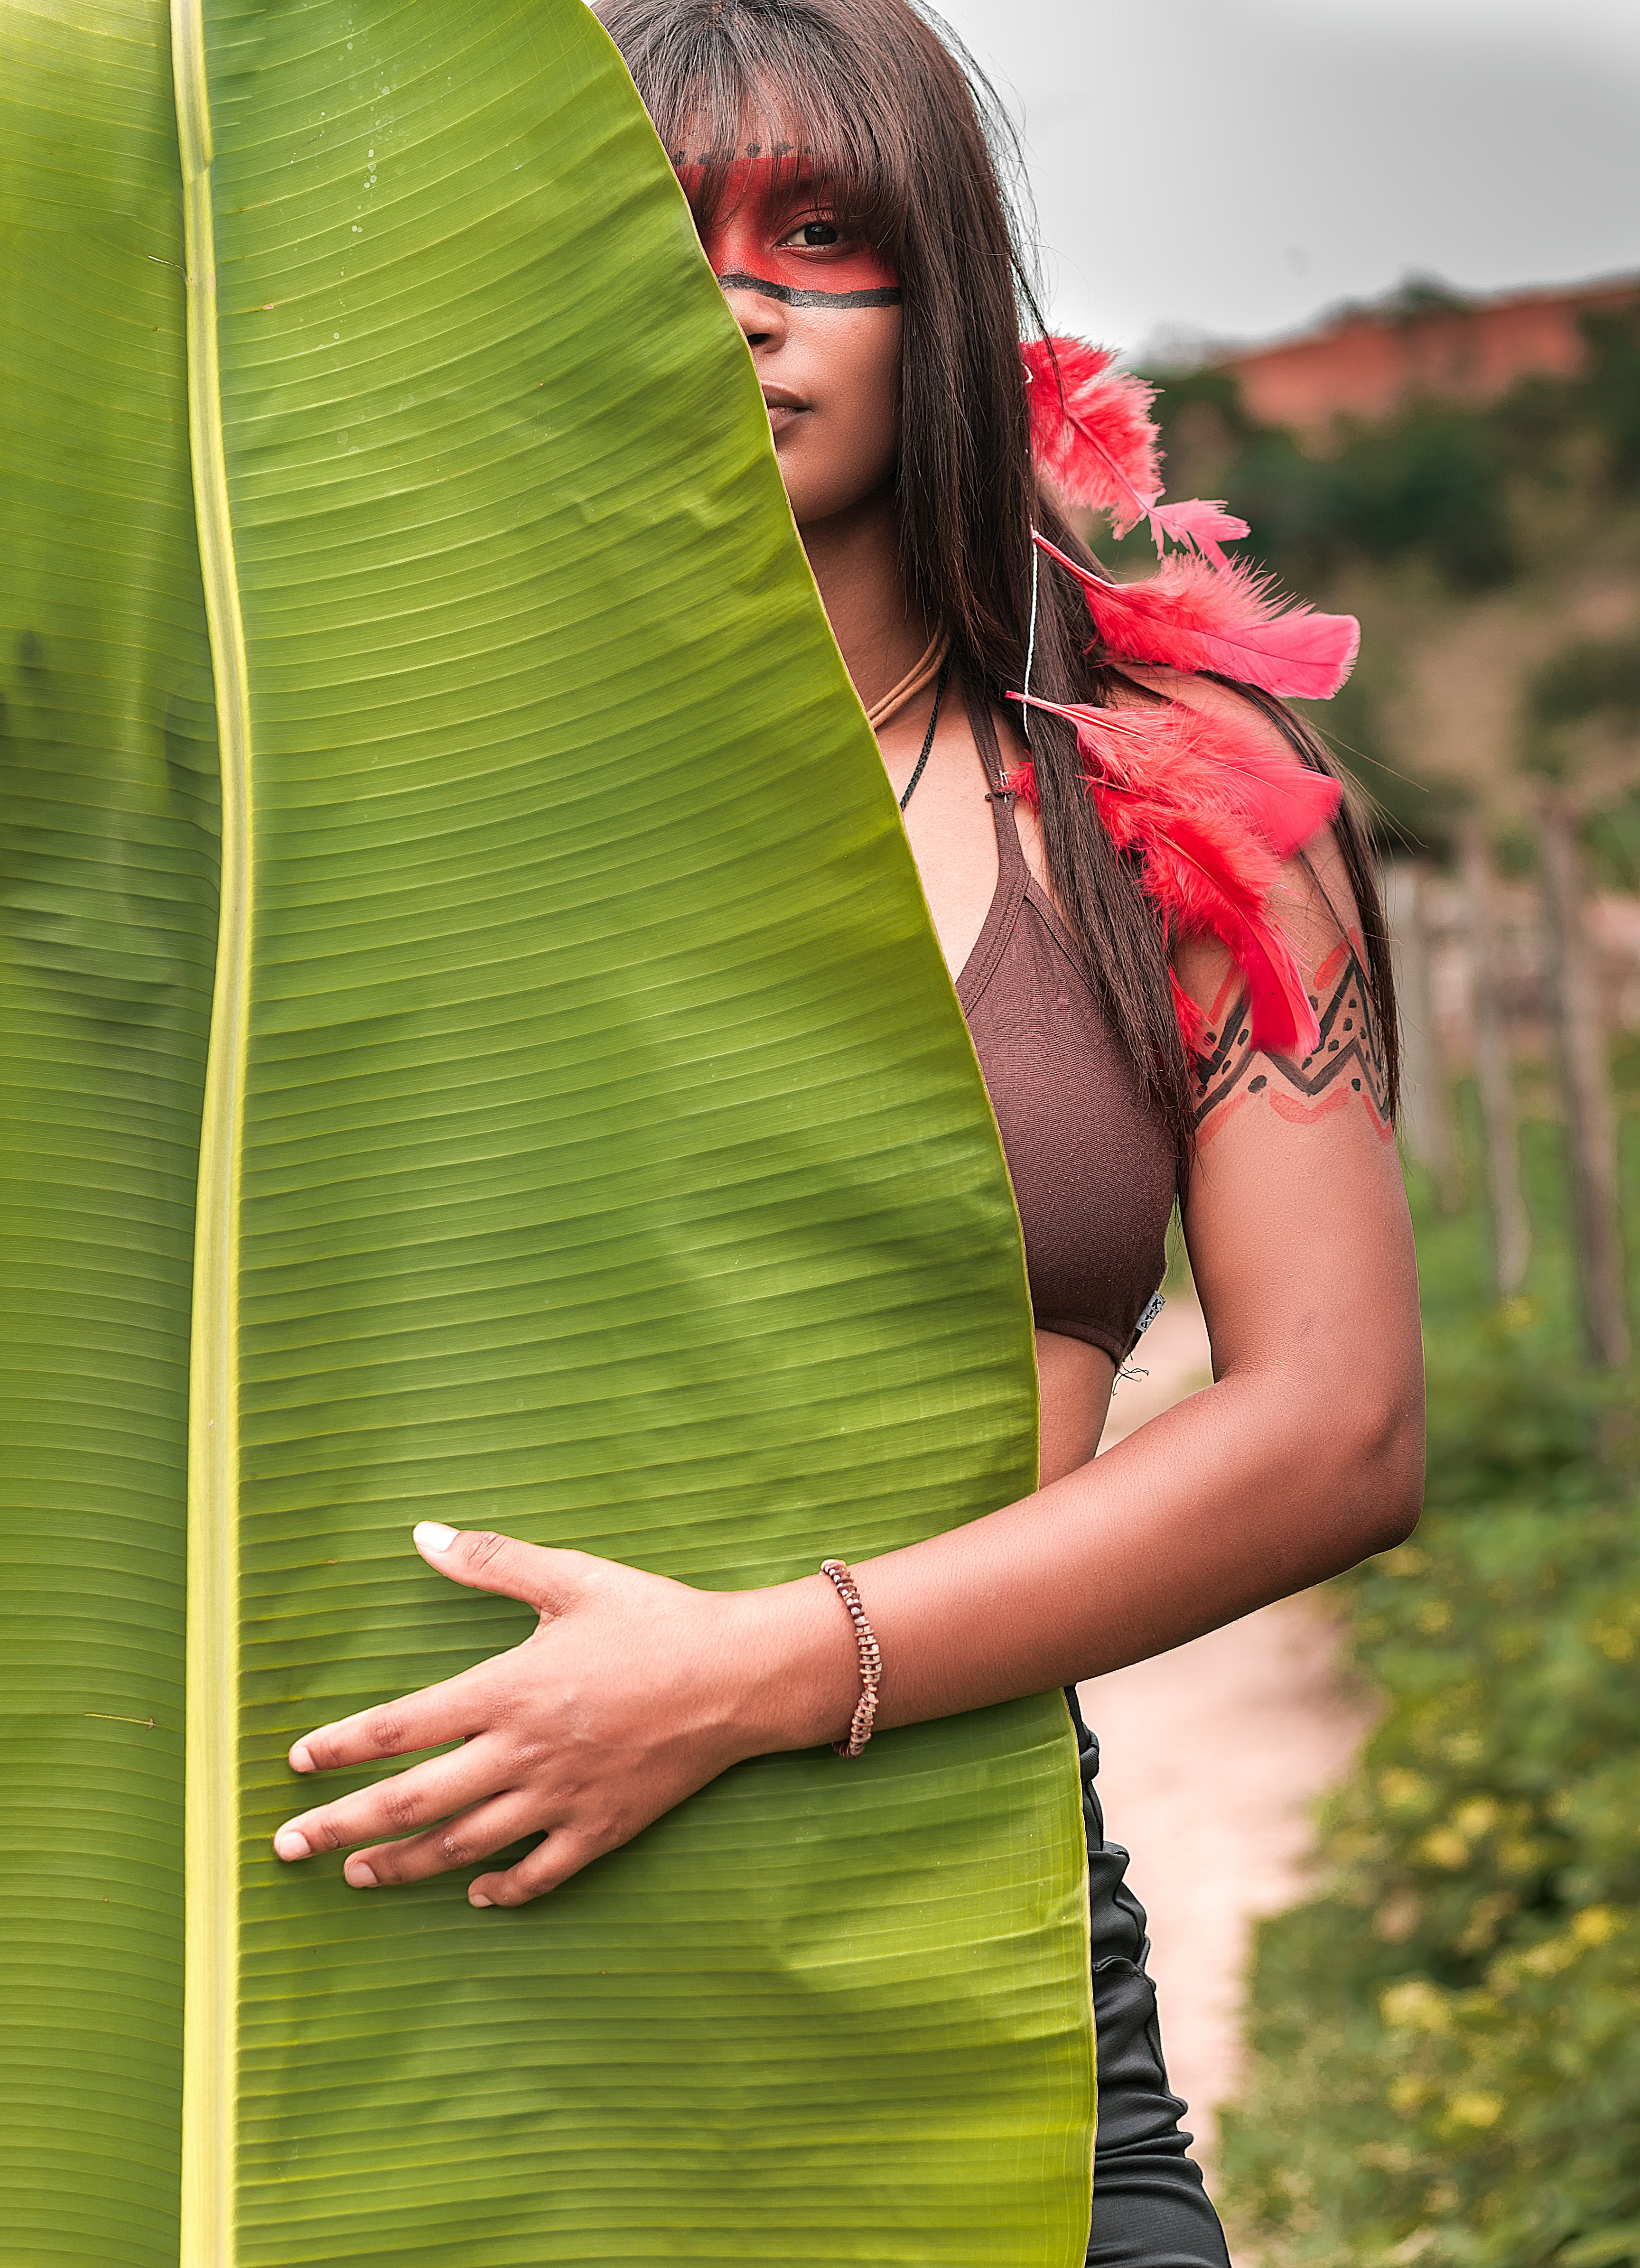 Woman in Brown Brassiere in Front of Banana Leaf